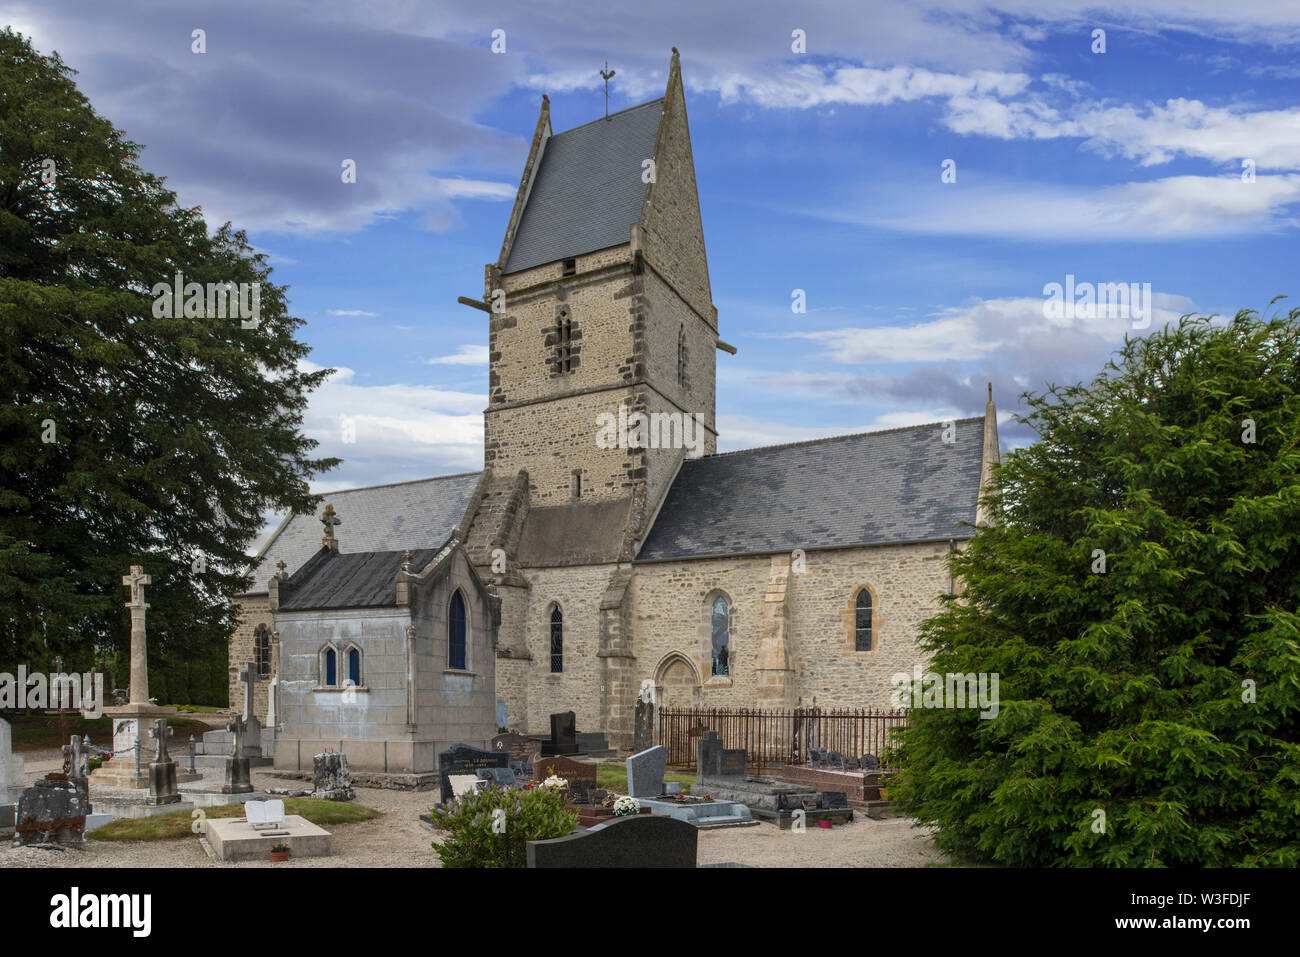 Church église Saint-Côme-et-Saint-Damien, used by two US Army Medics as a first-aid post during WW2 at Angoville-au-Plain, Manche, Normandy, France - Stock Image